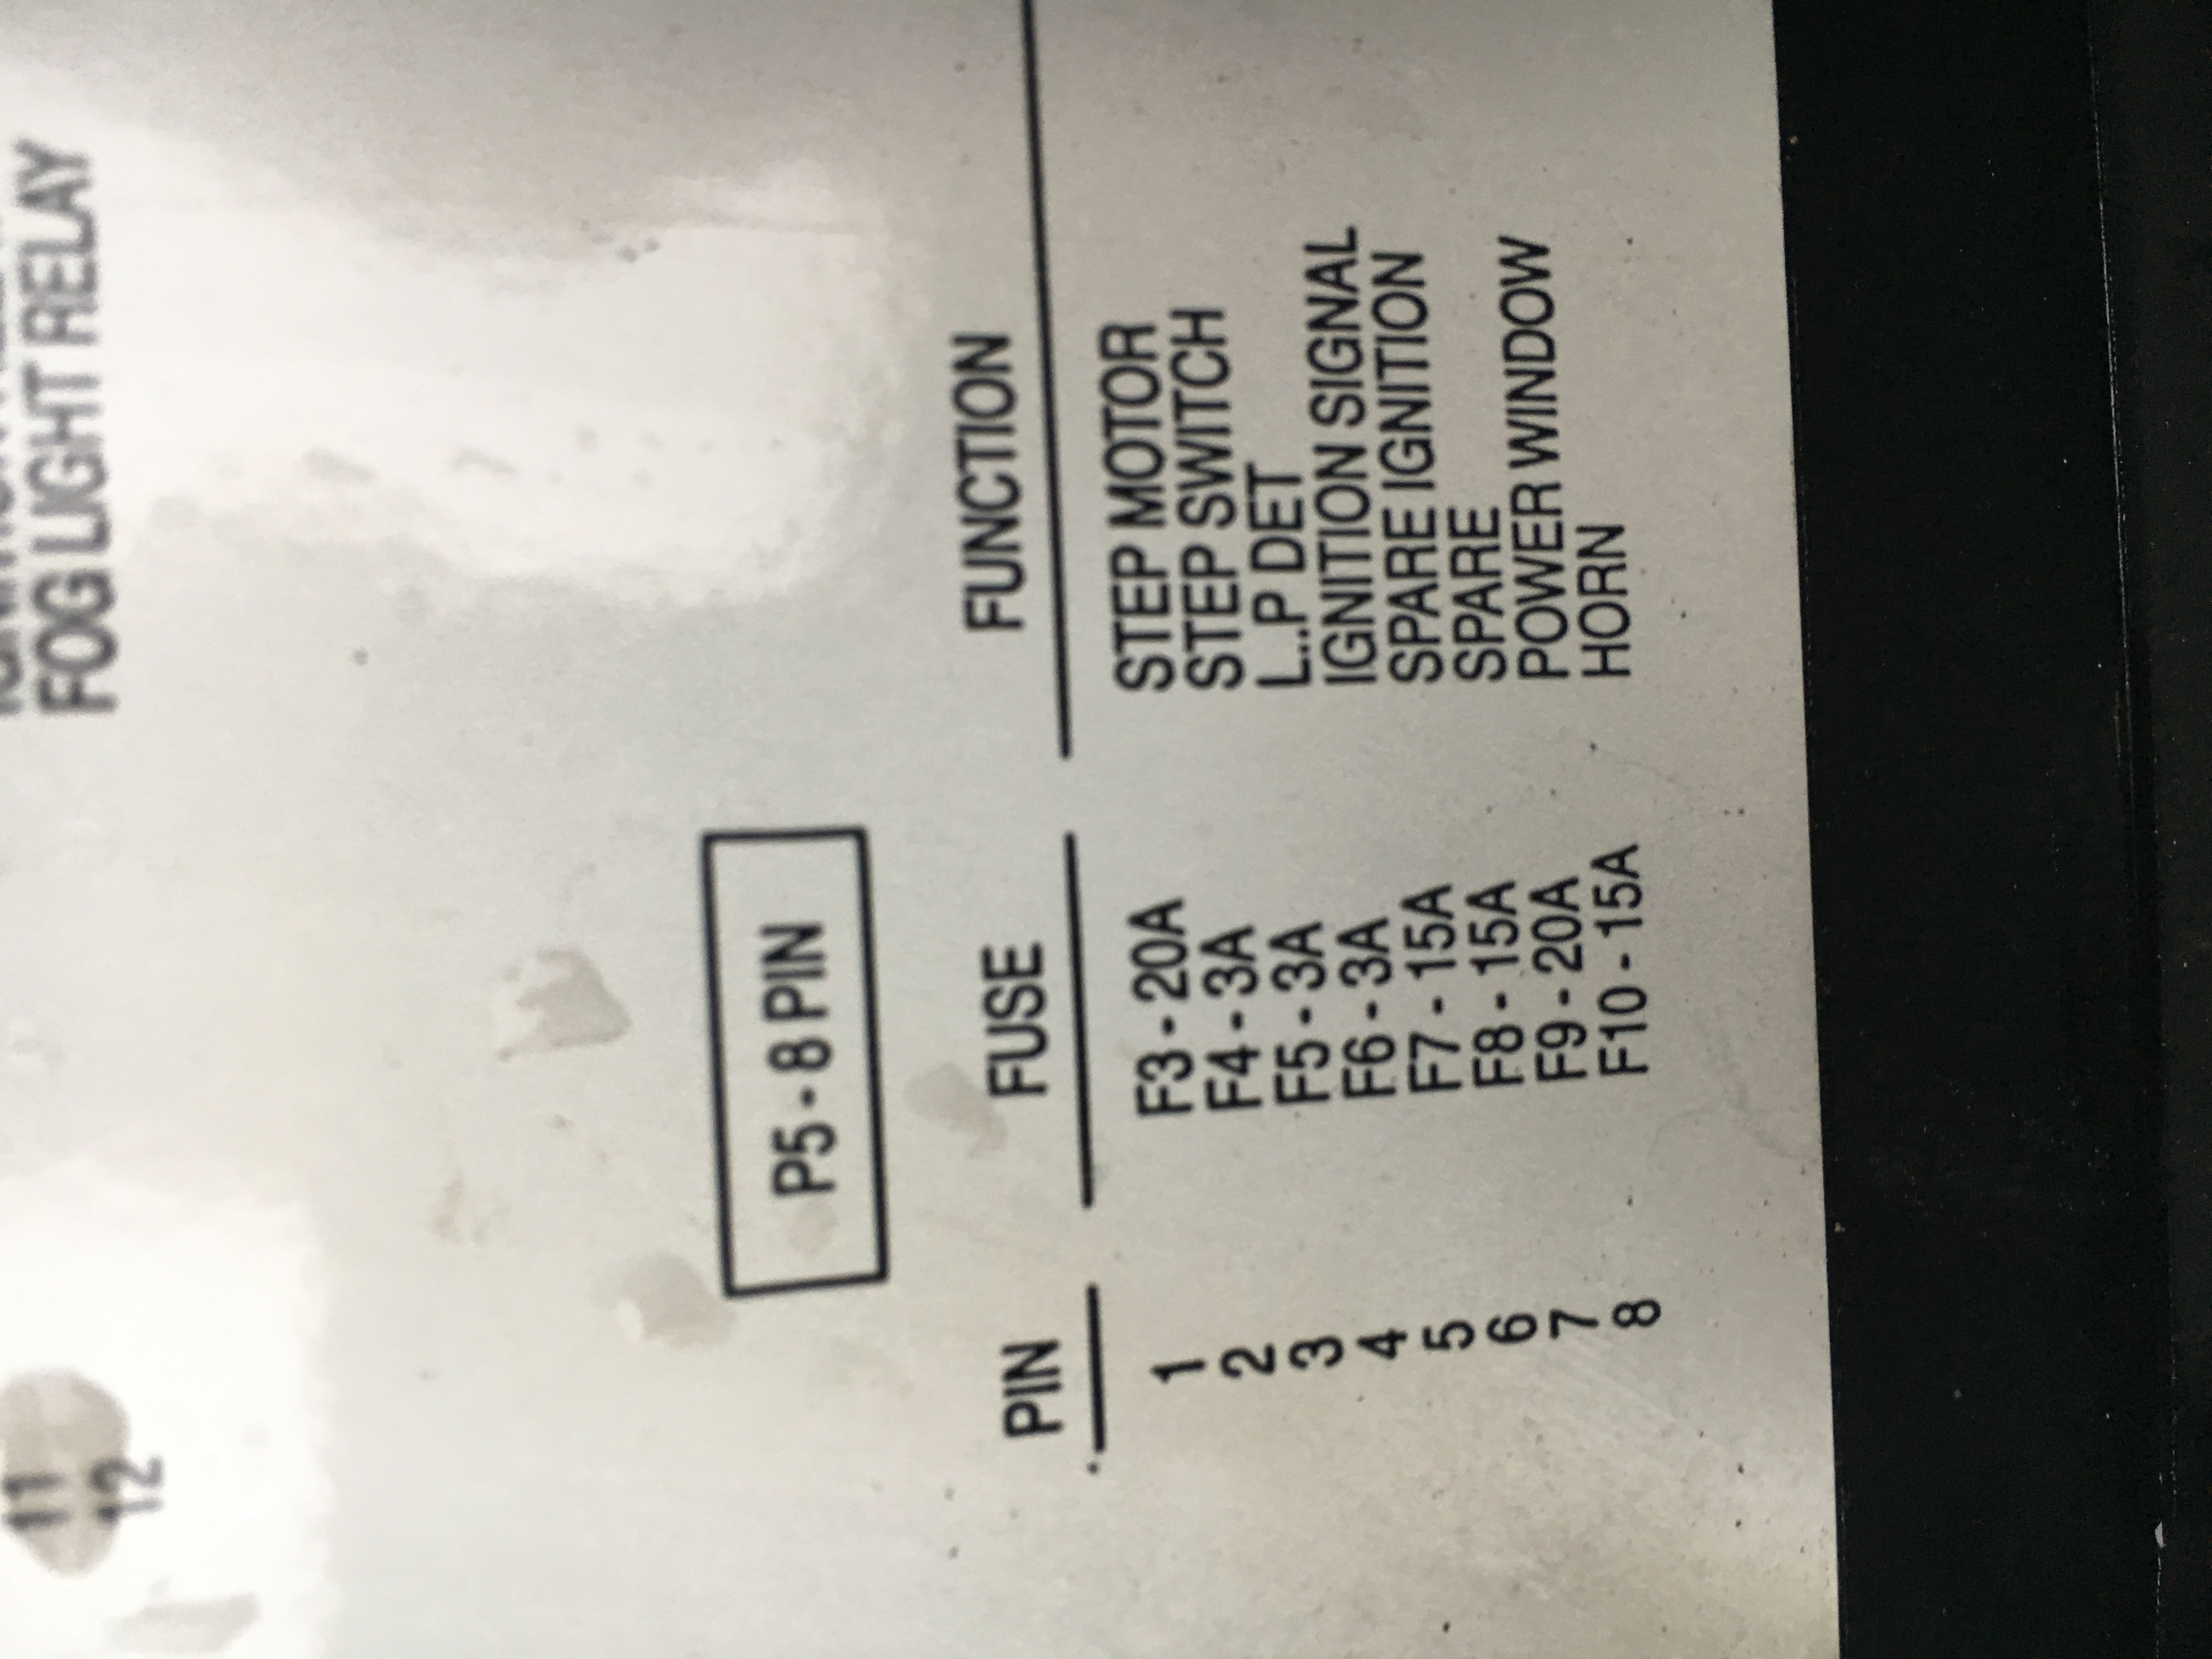 I have a 40 Pace arrow, the switch for the engine battery and ...